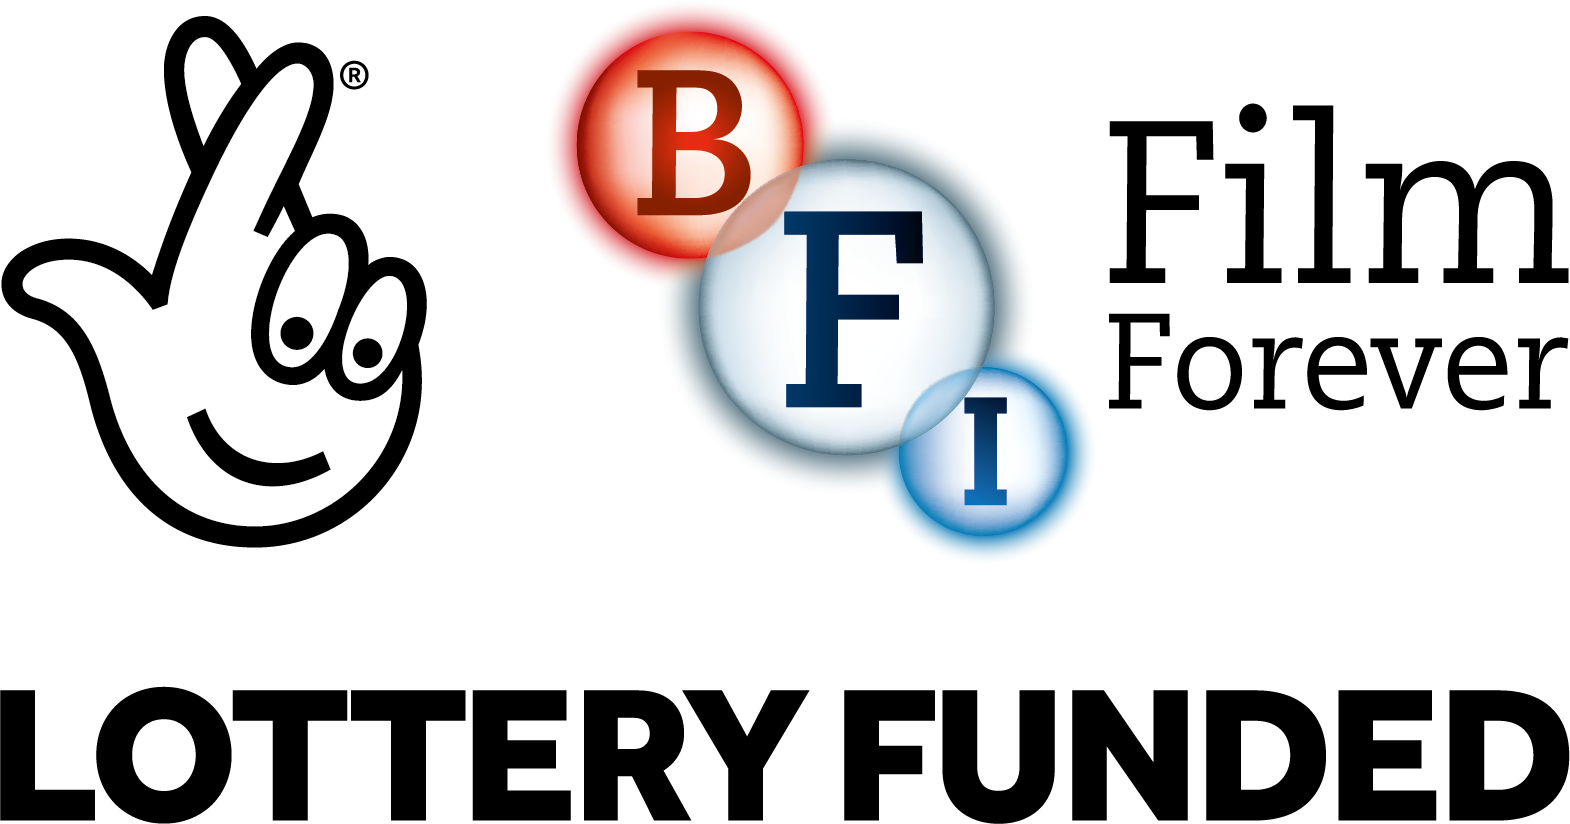 4_BFI LOTTERY FUNDED_FF_COL_LOGO_GLOW_POS.png